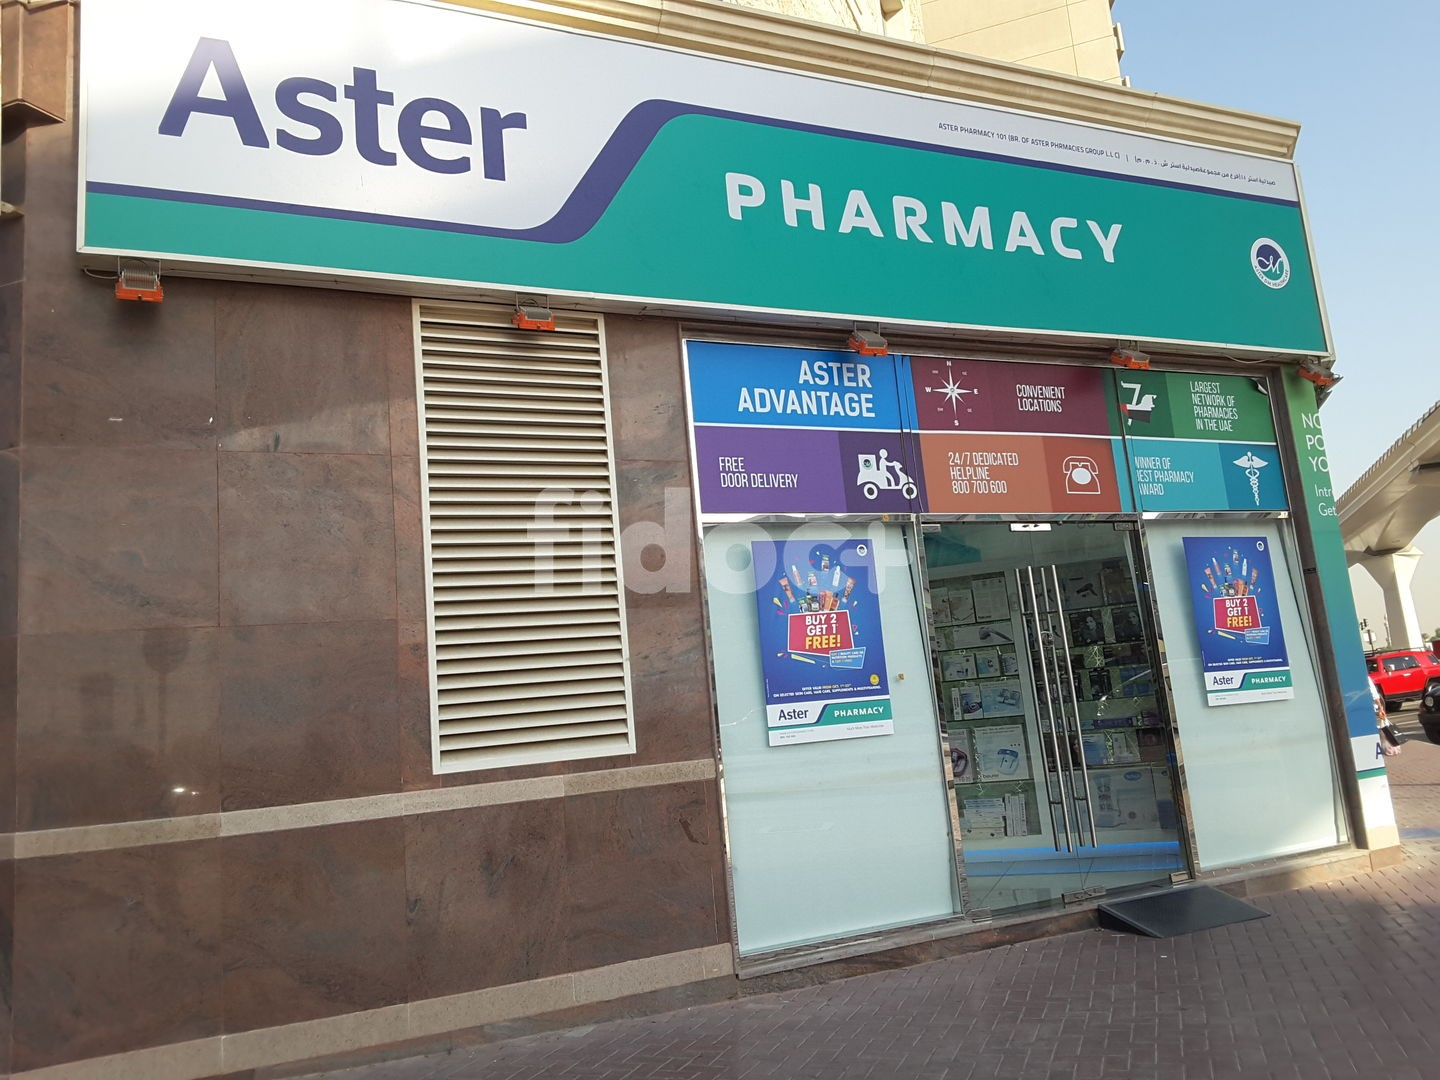 Aster Pharmacy (Al Futtaim Building) In Bur Dubai, Dubai